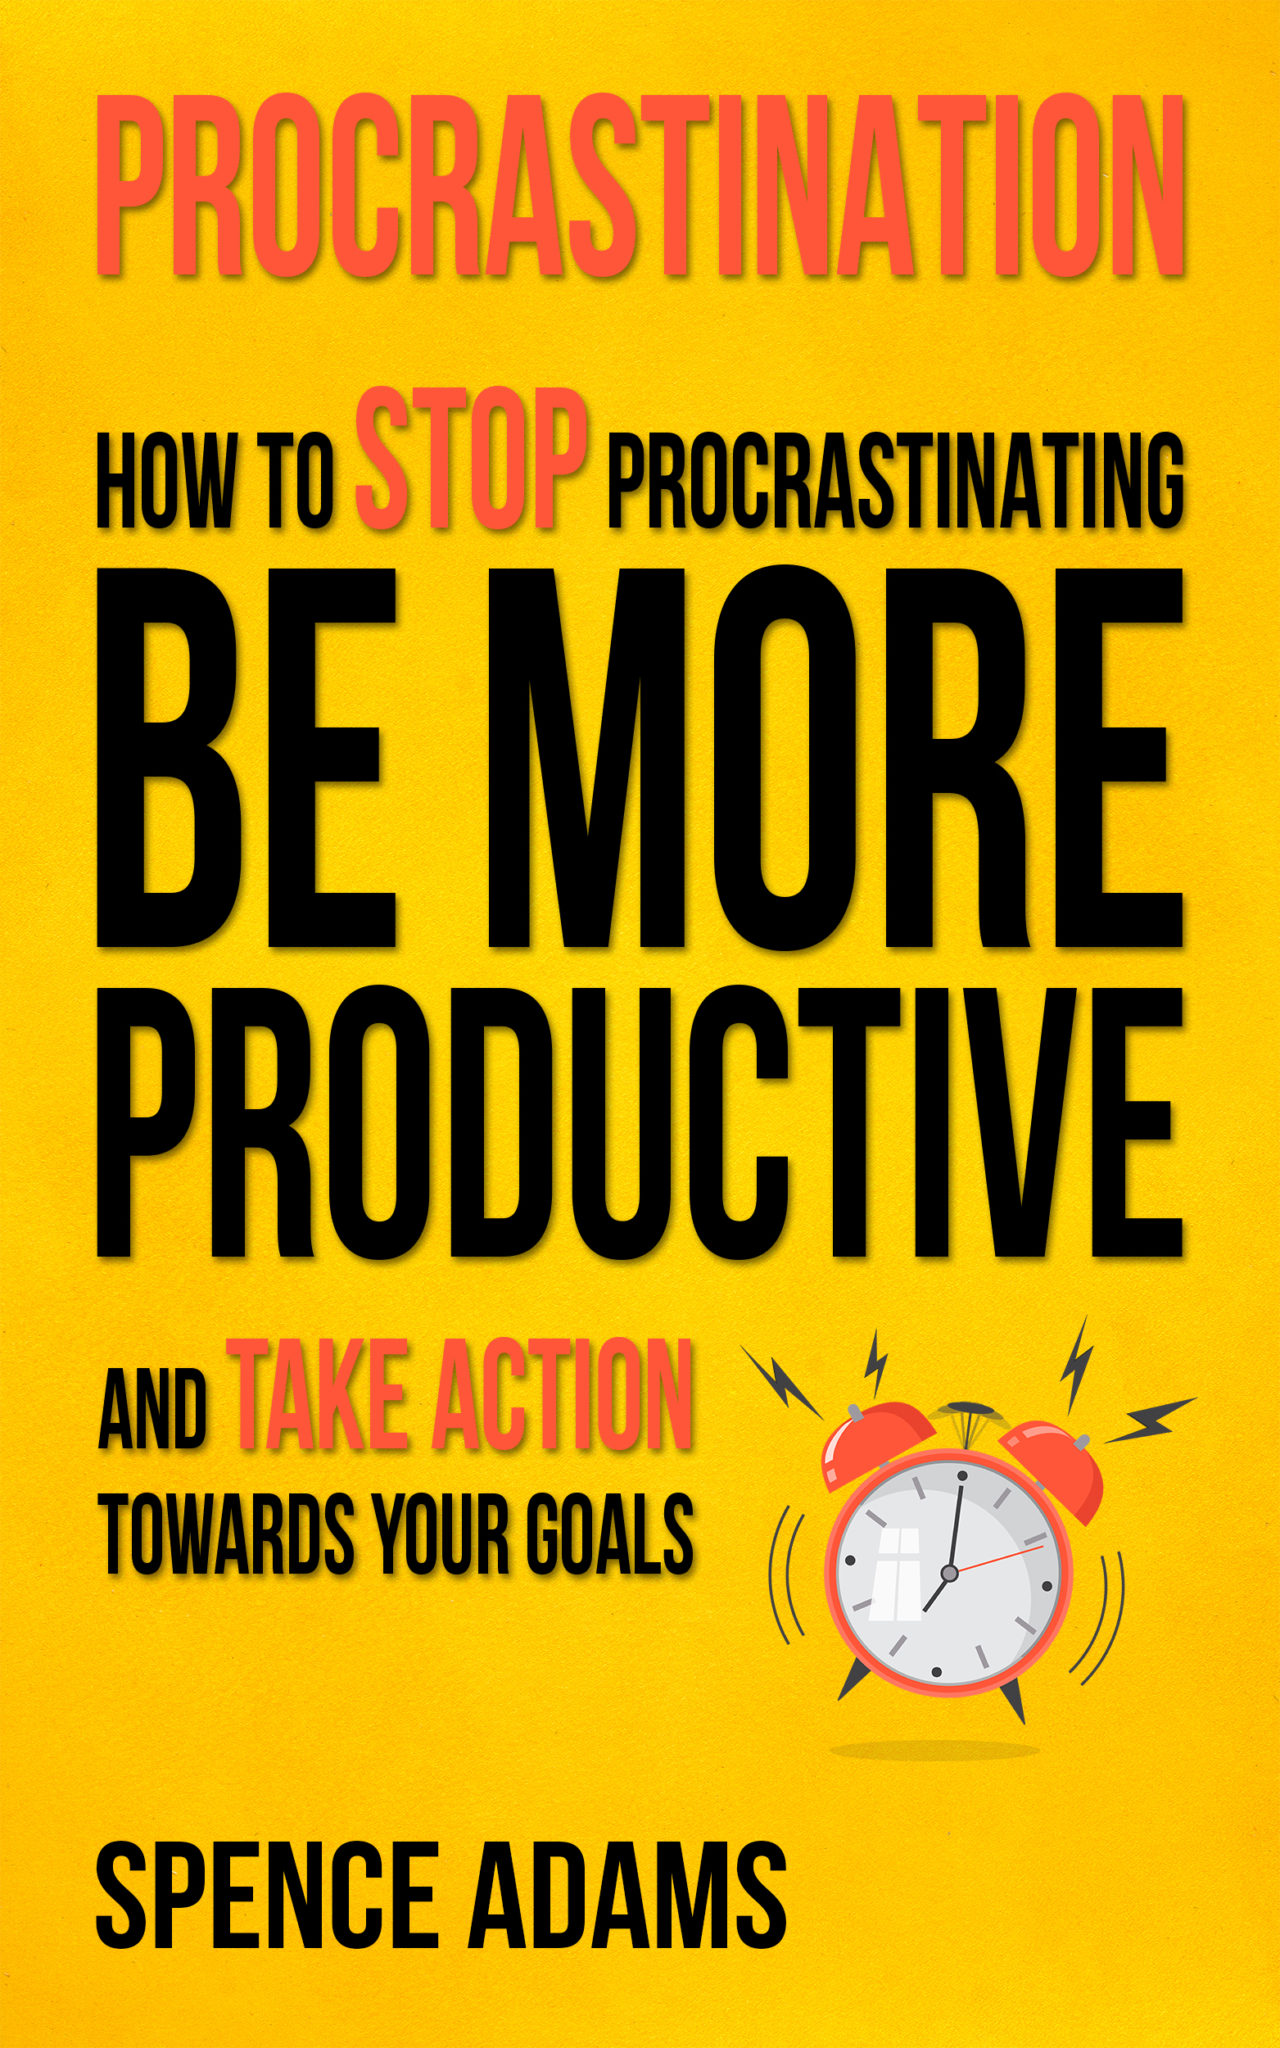 Procrastination: How to Stop Procrastinating, Be More Productive, and Take Action Towards Your Goals